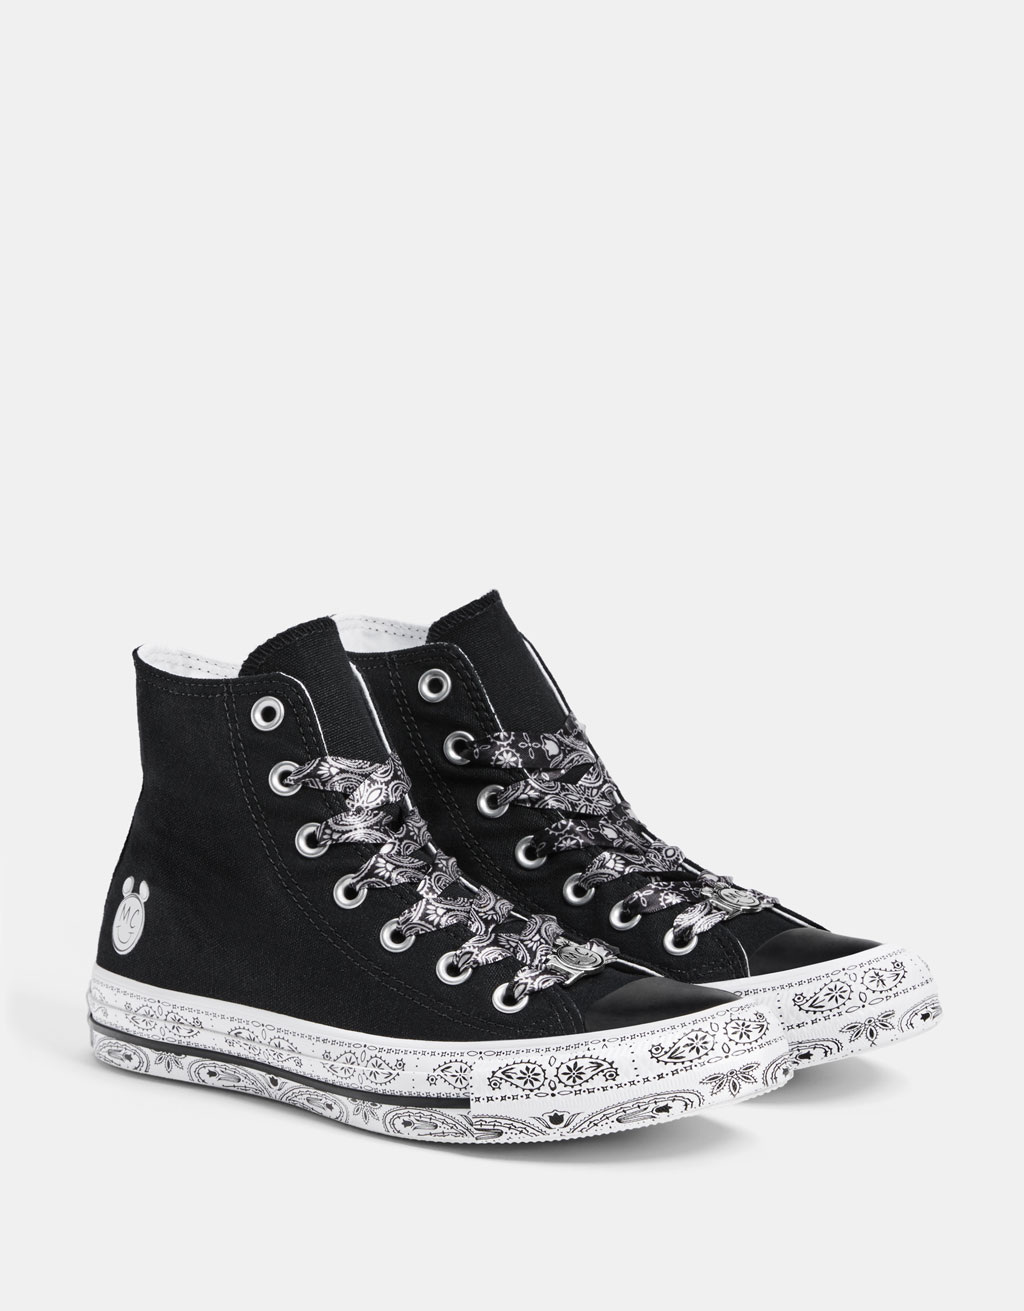 Converse X Miley Cyrus fabric high-top sneakers